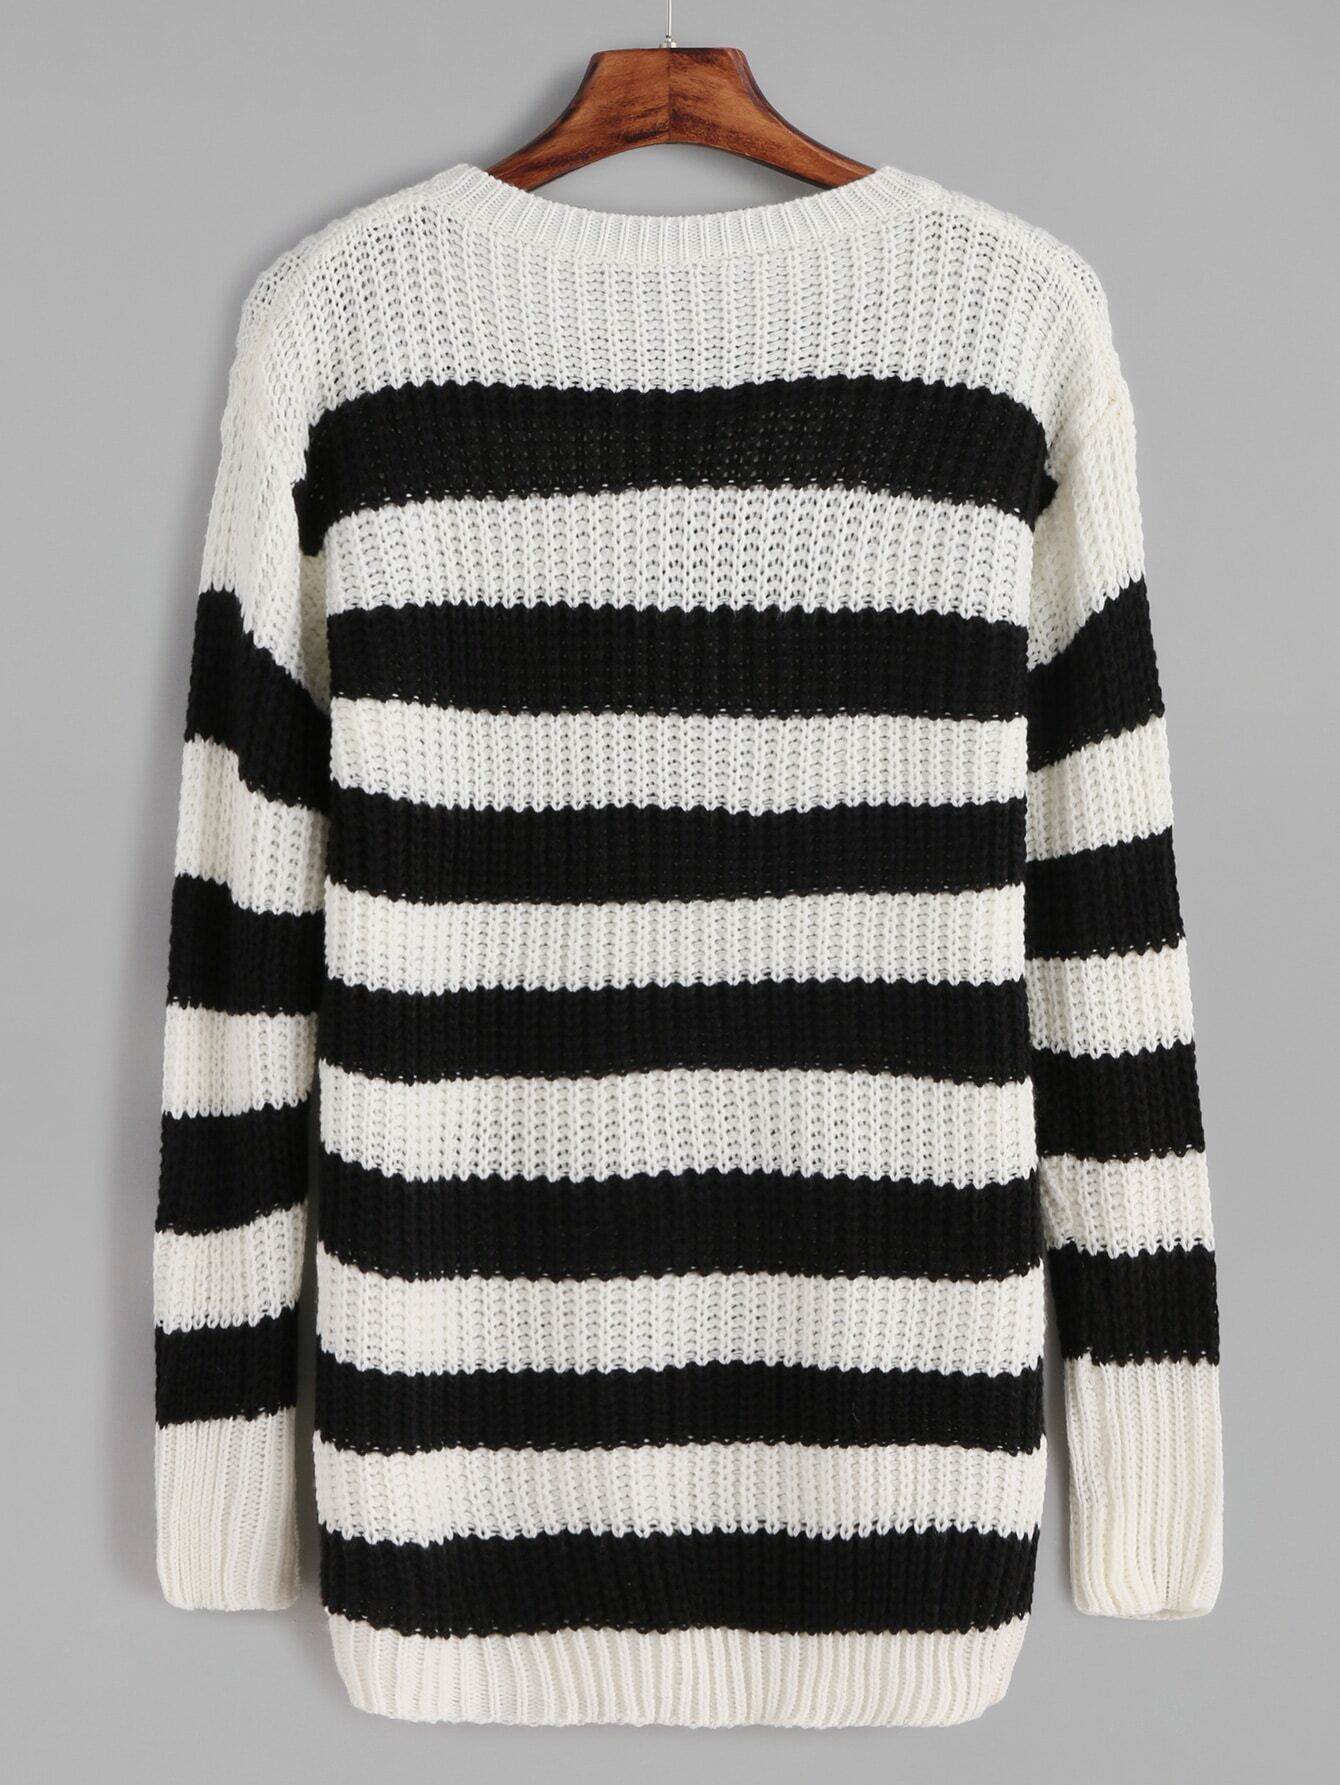 Black And White Striped Loose Knit Sweater -SheIn(Sheinside)